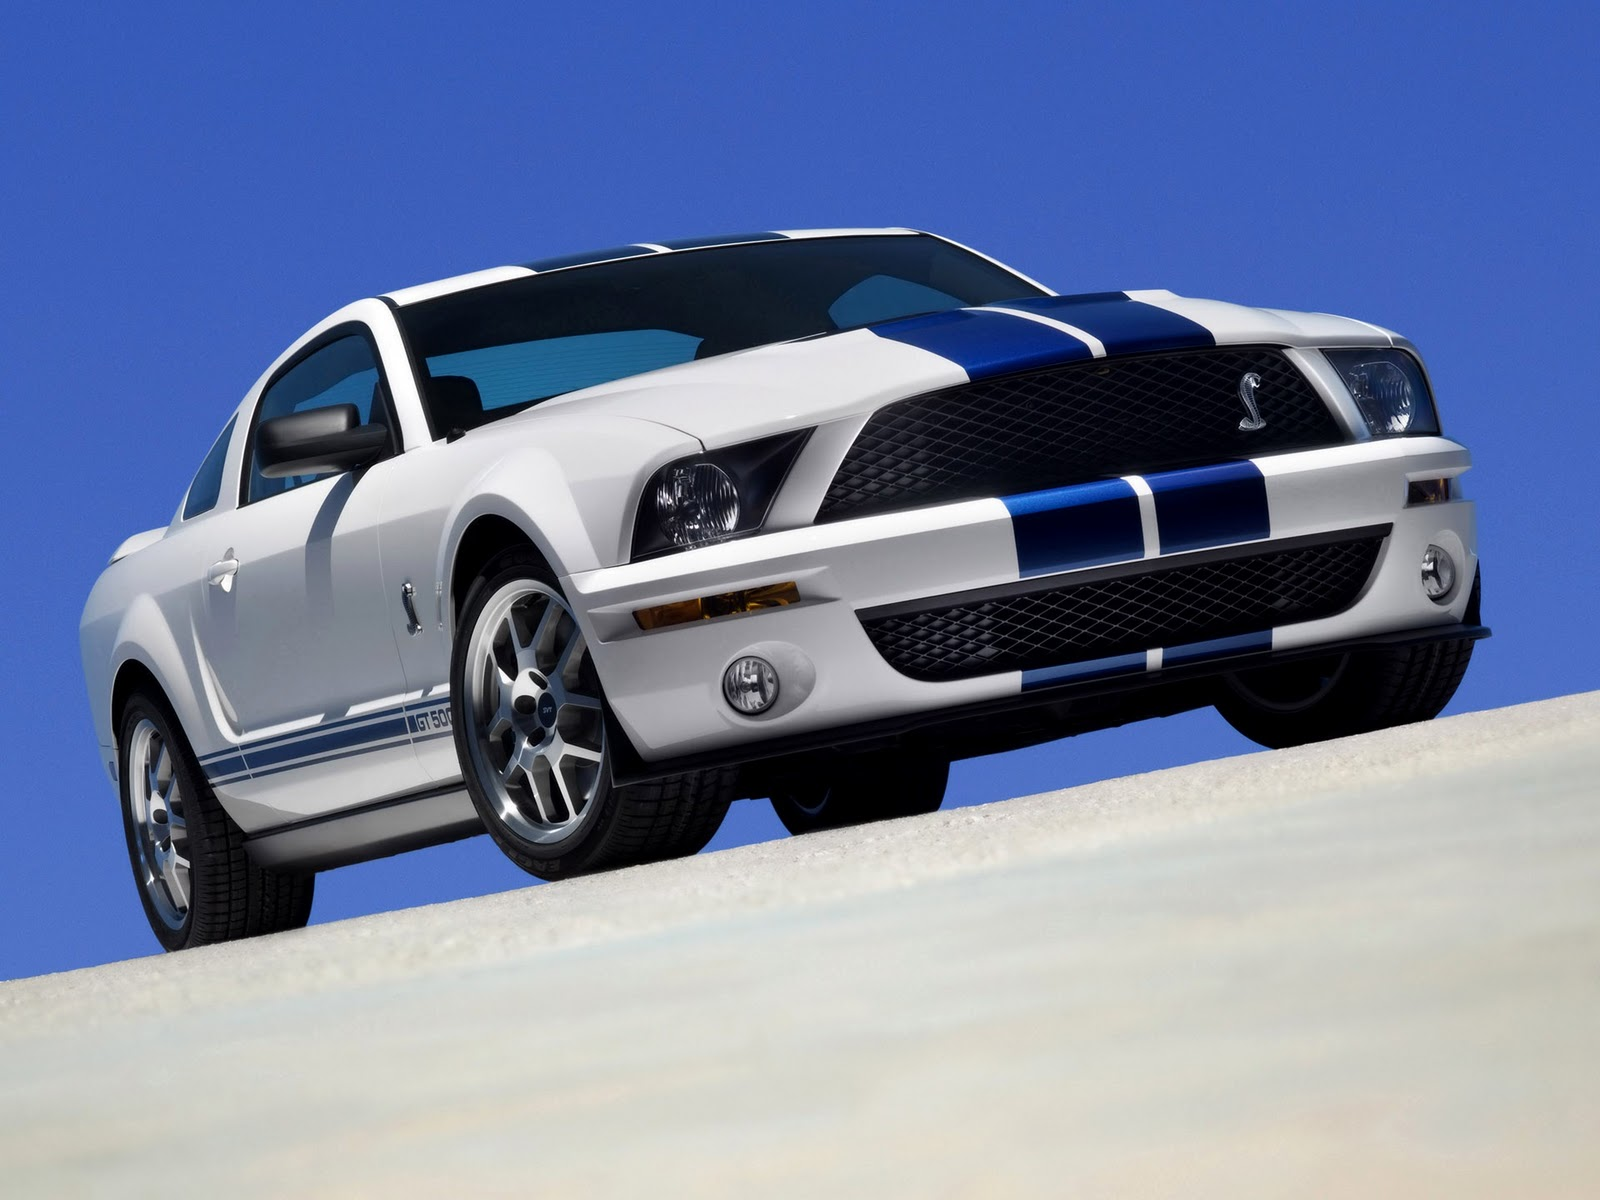 World Car Wallpapers 2012 Shelby Gt500 HD Wallpapers Download free images and photos [musssic.tk]